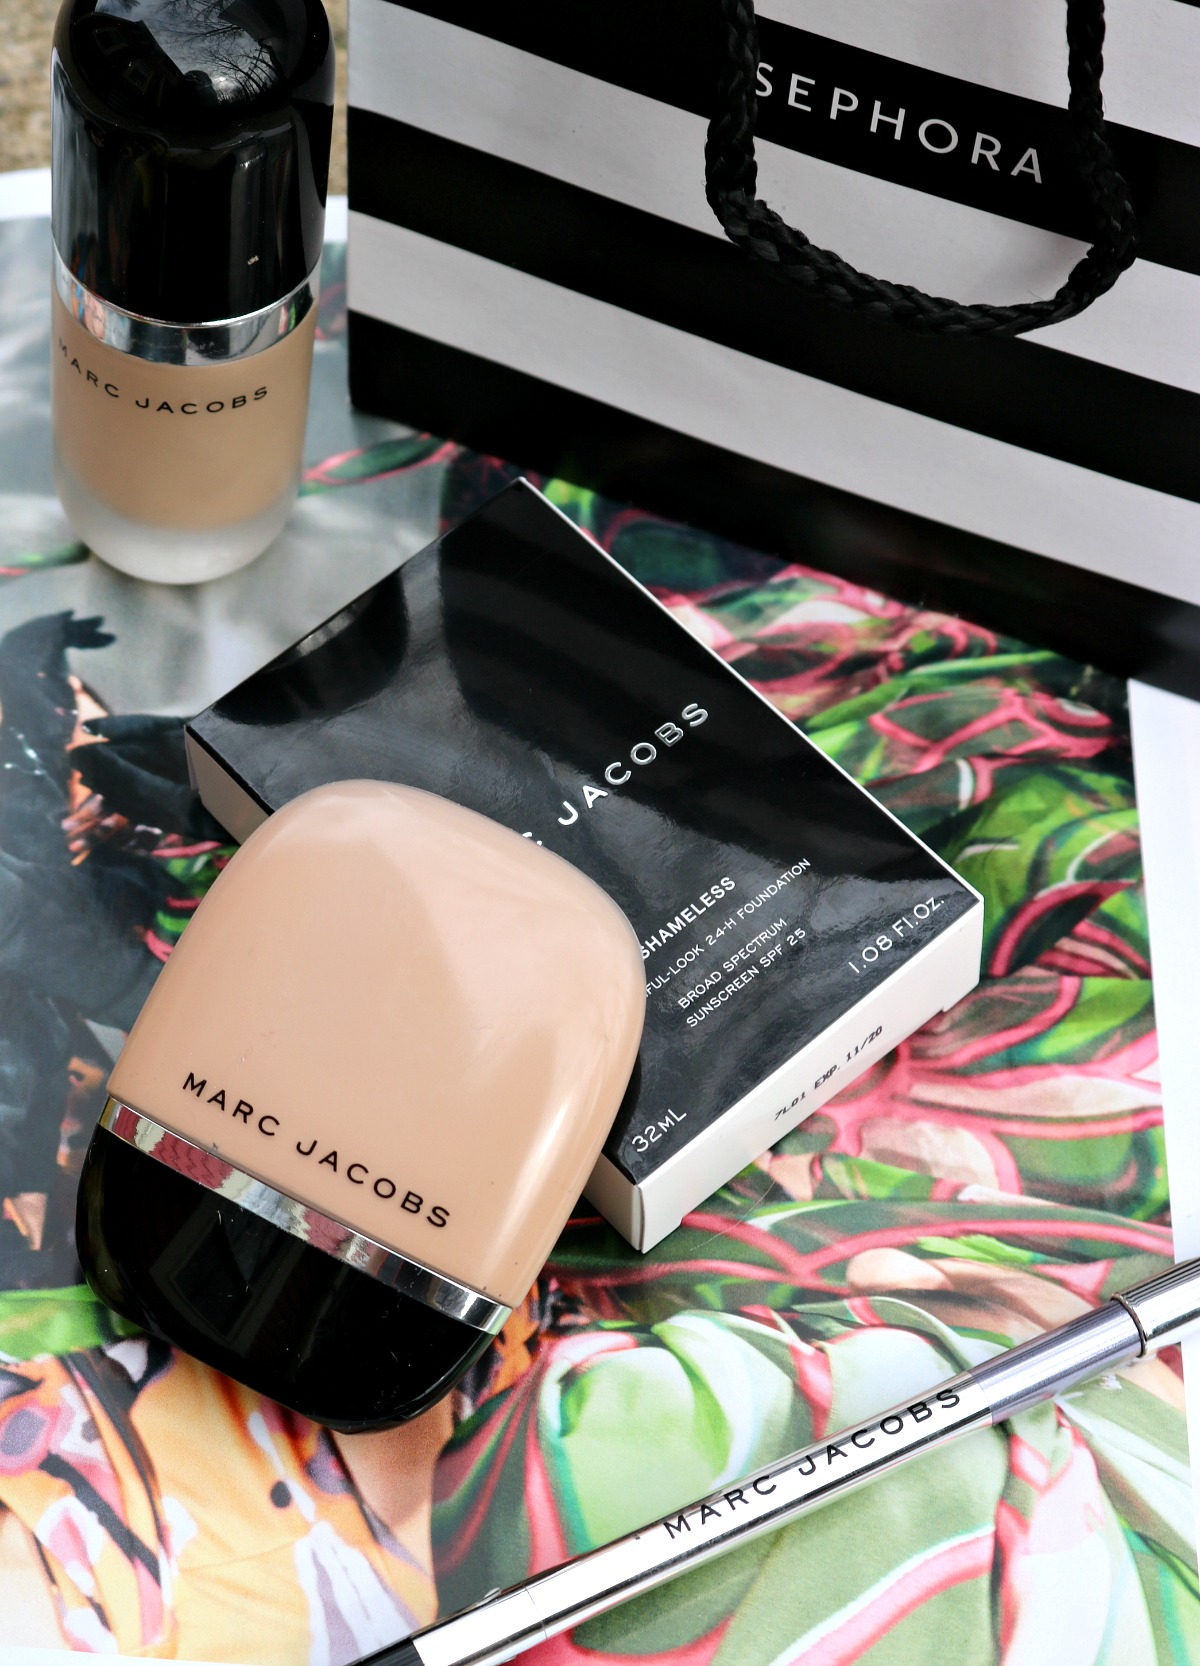 Marc Jacobs Shameless Foundation Review I DreaminLace.com #MarcJacobs #CrueltyFreeBeauty